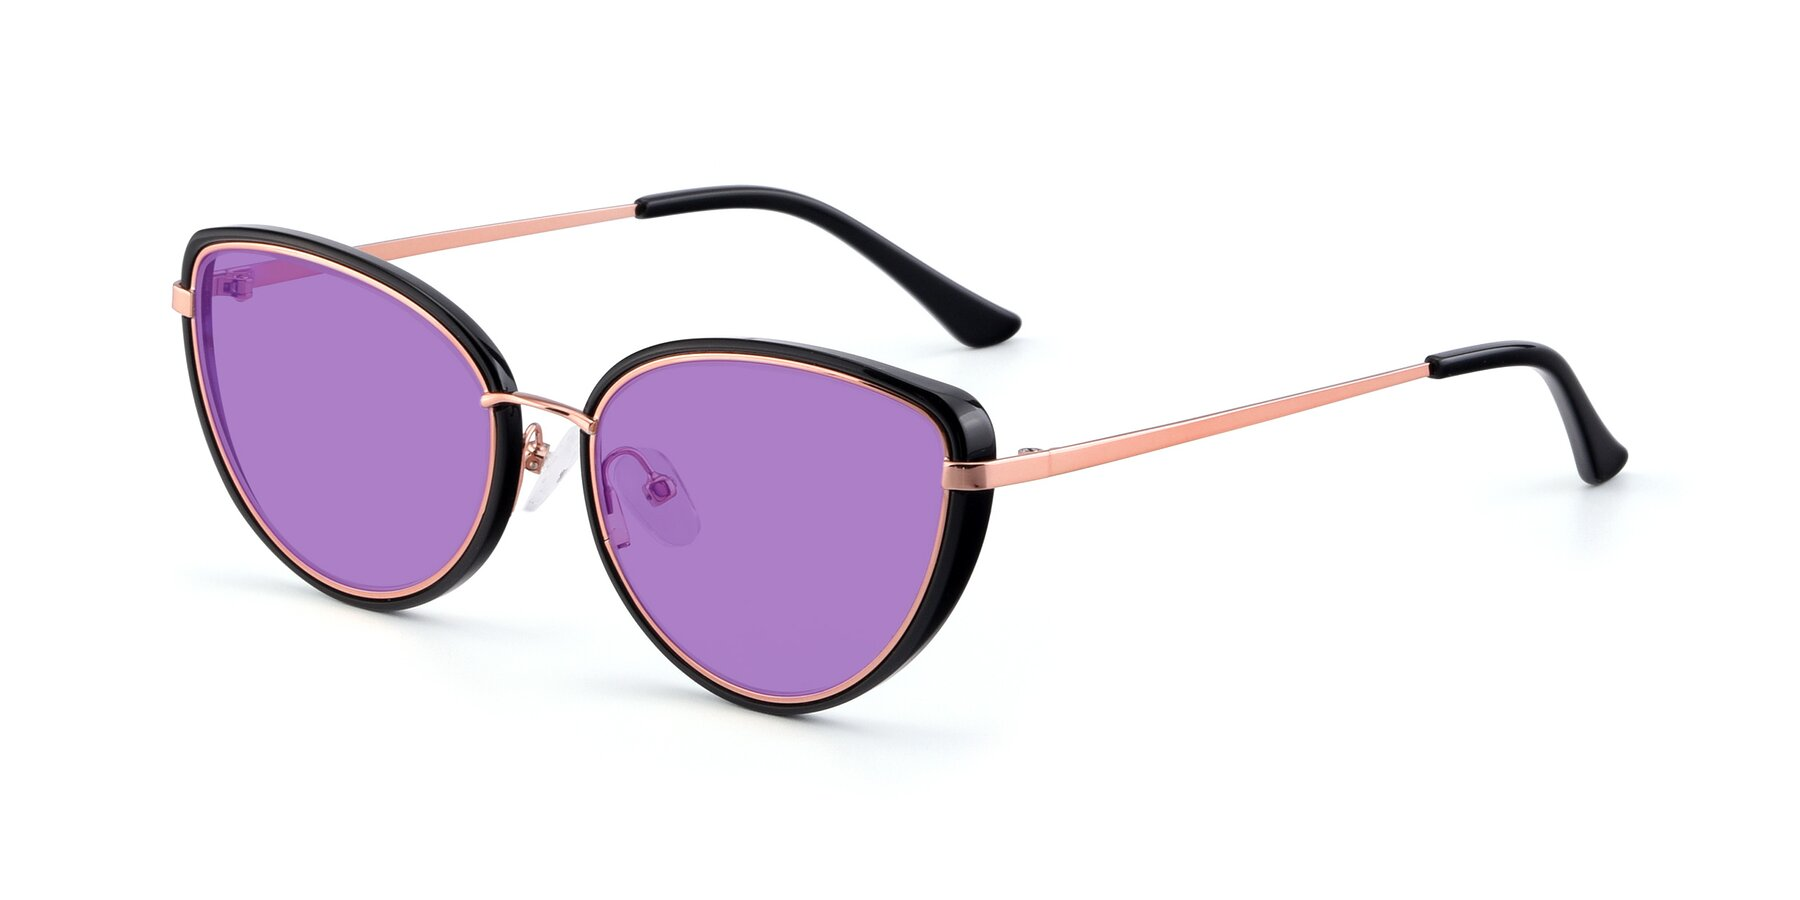 Angle of 17706 in Black-Rose Gold with Medium Purple Tinted Lenses